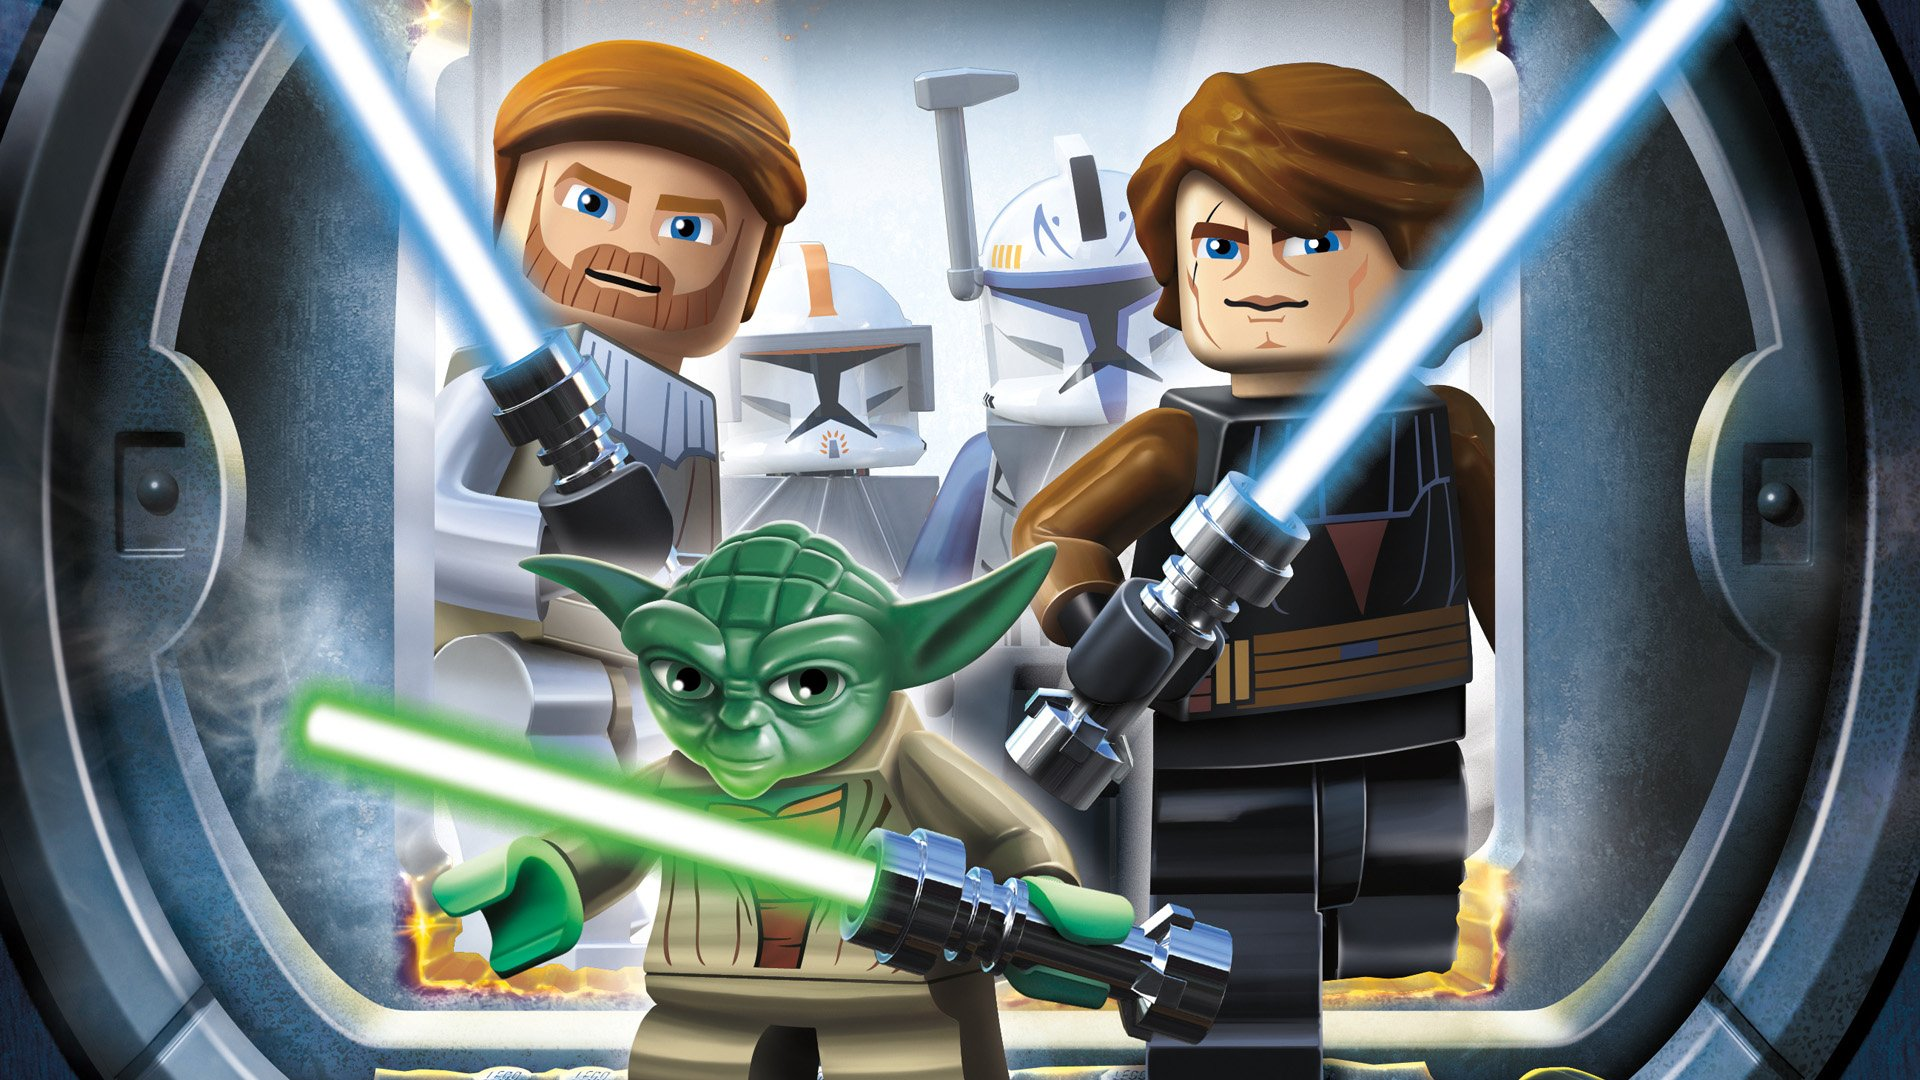 Lego Star Wars Iii The Clone Wars Fondo De Pantalla Hd